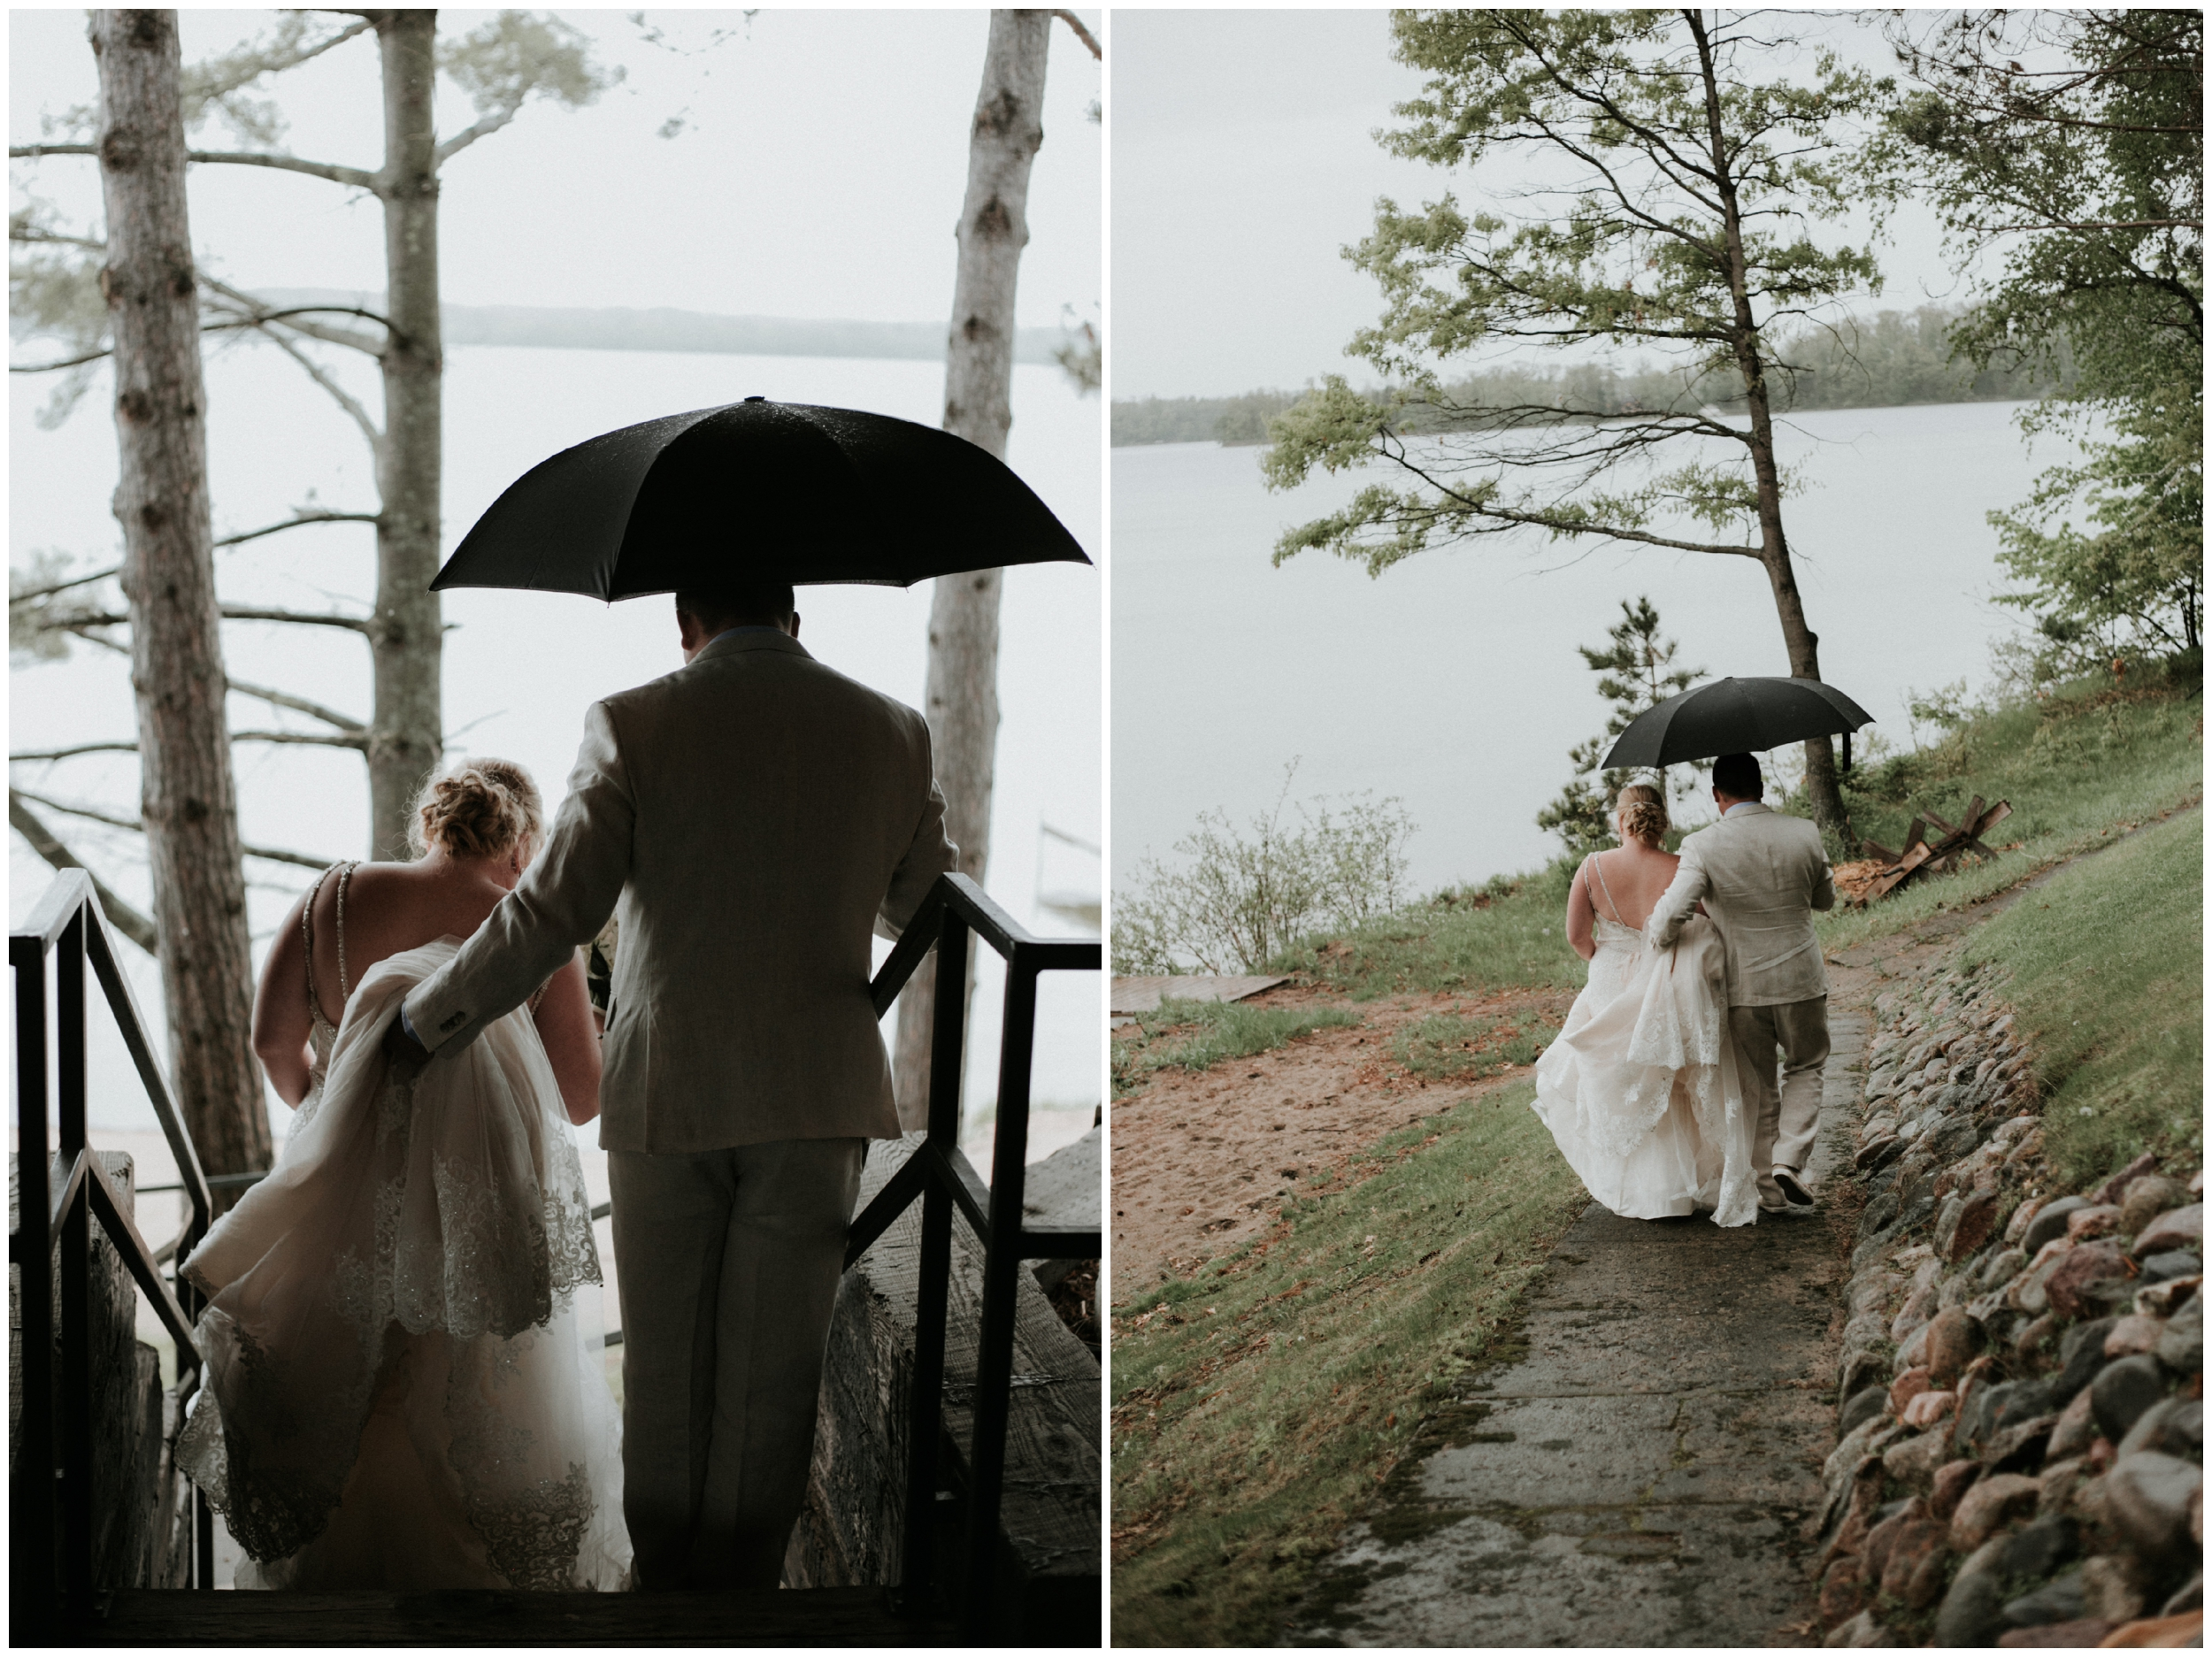 Rainy outdoor wedding on Gull lake in Brainerd Minnesota